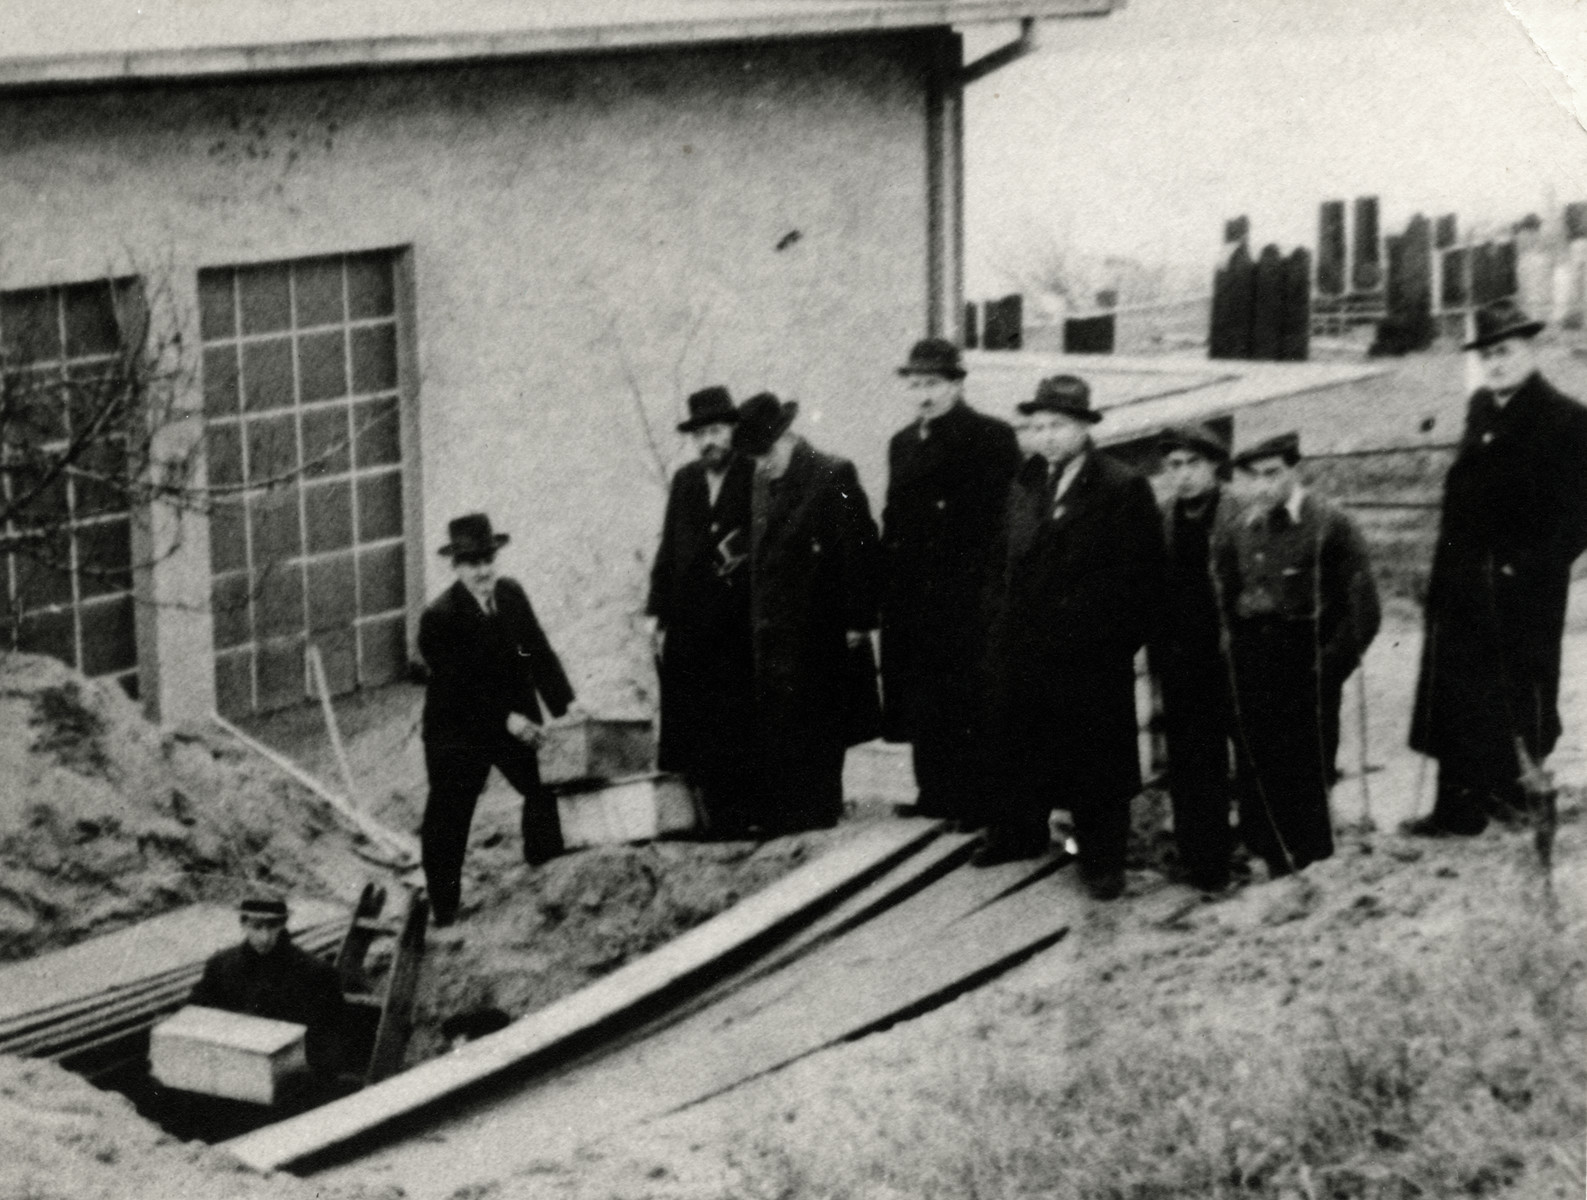 Slovak Jews relocate the tombstones and coffins from the old Jewish cemetery to new Orthodox cemetery farther from the city center to make way for a tramway tunnel.